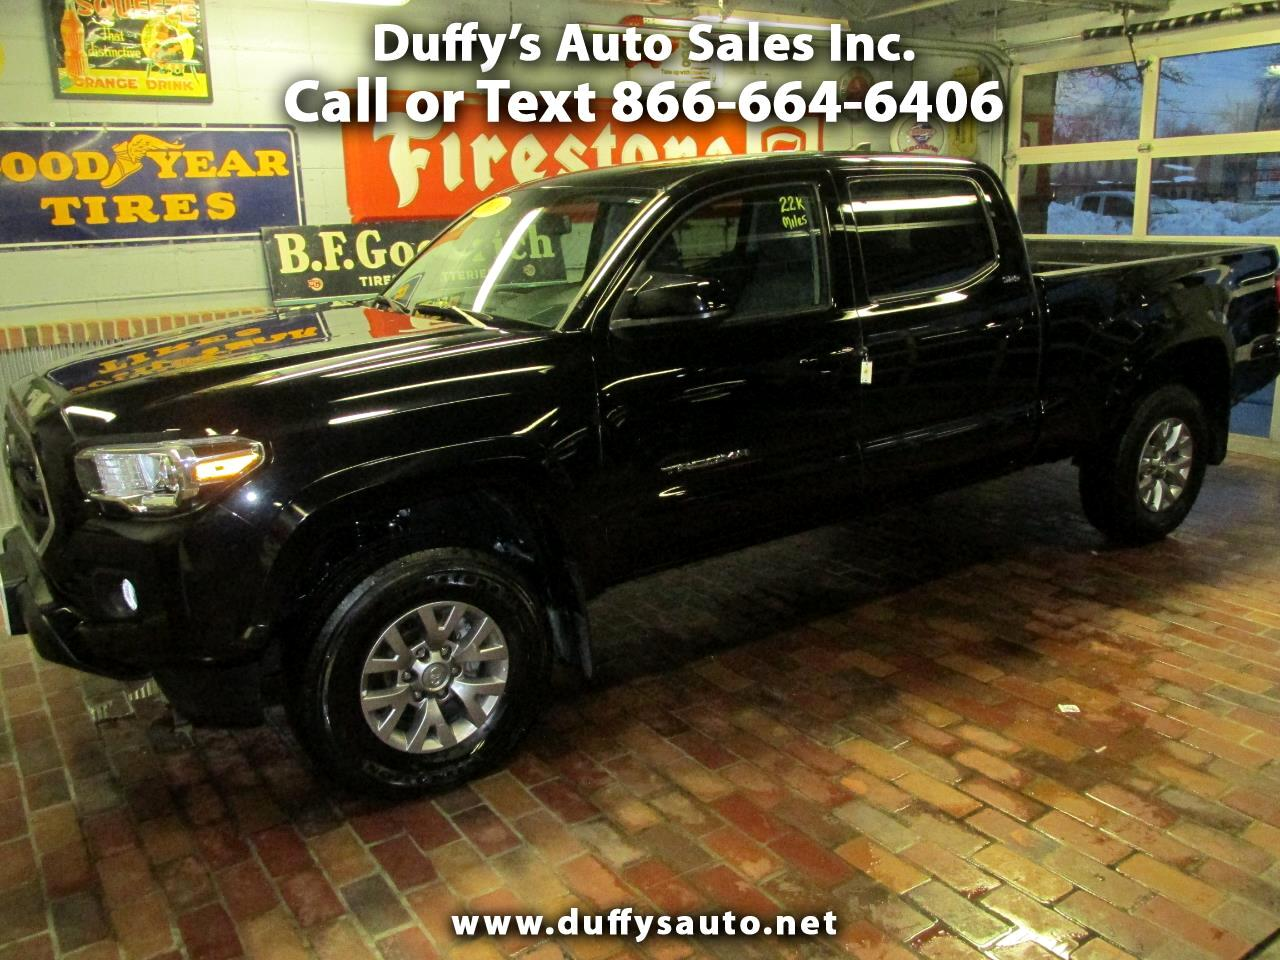 2018 Toyota Tacoma SR5 CrewCab Long Bed V6 4WD